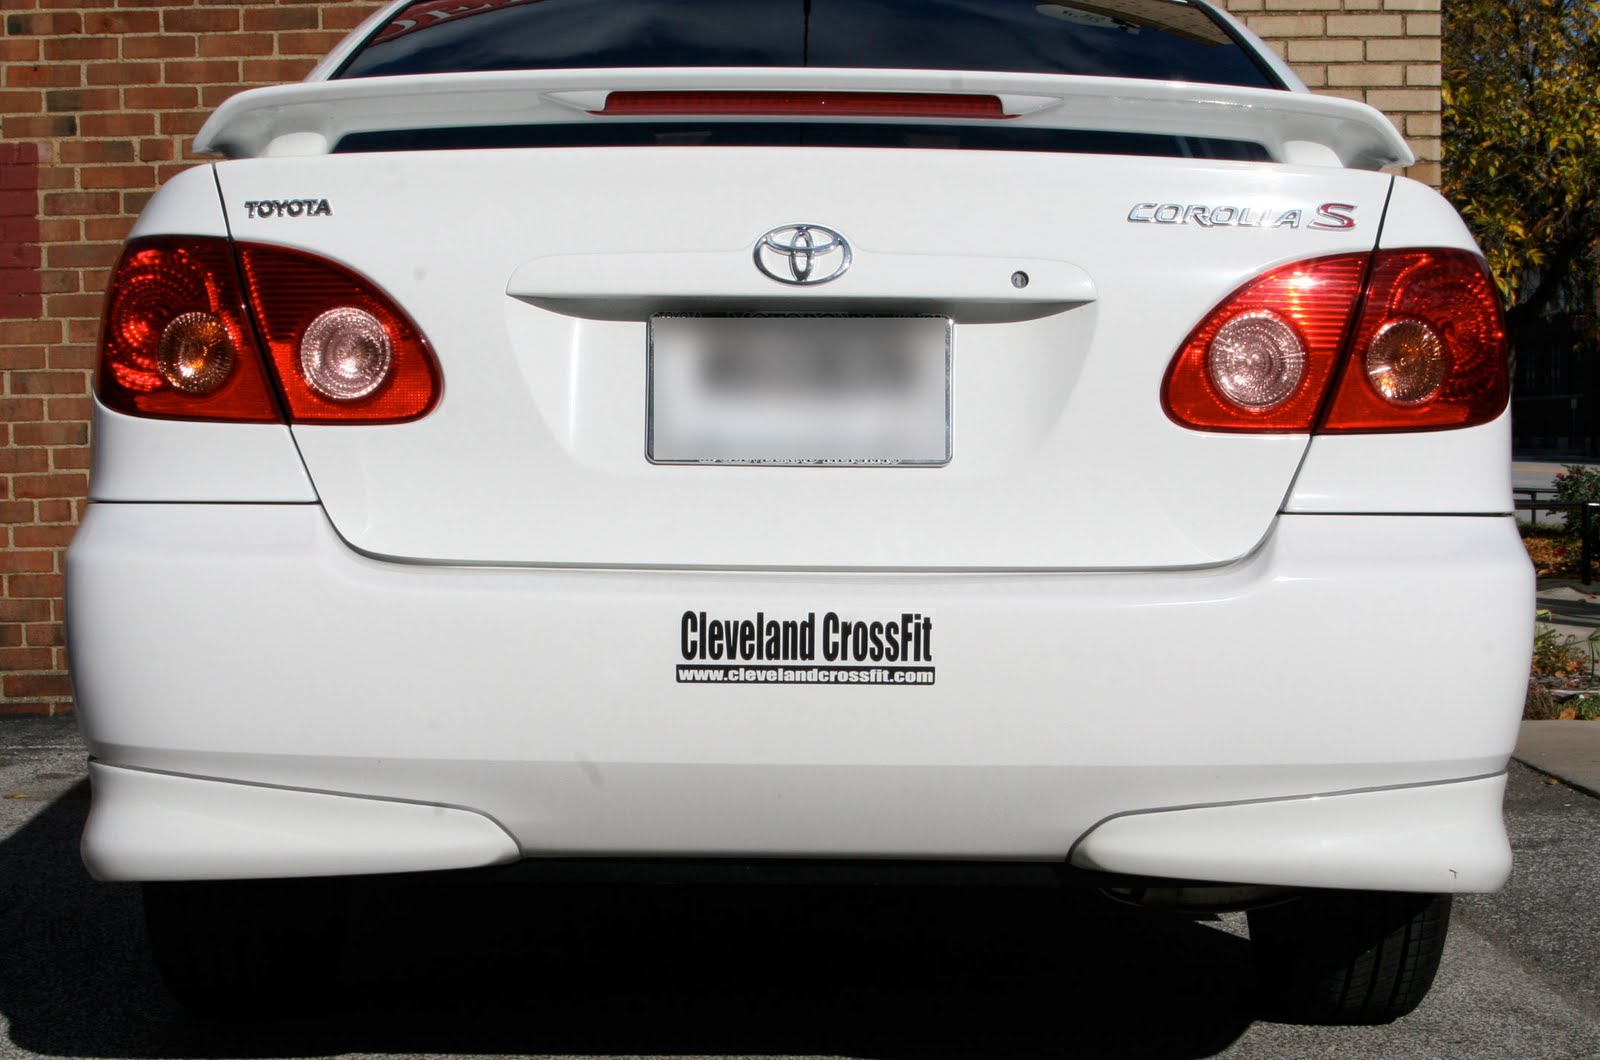 Bumper sticker toyota corolla sticker best car sticker